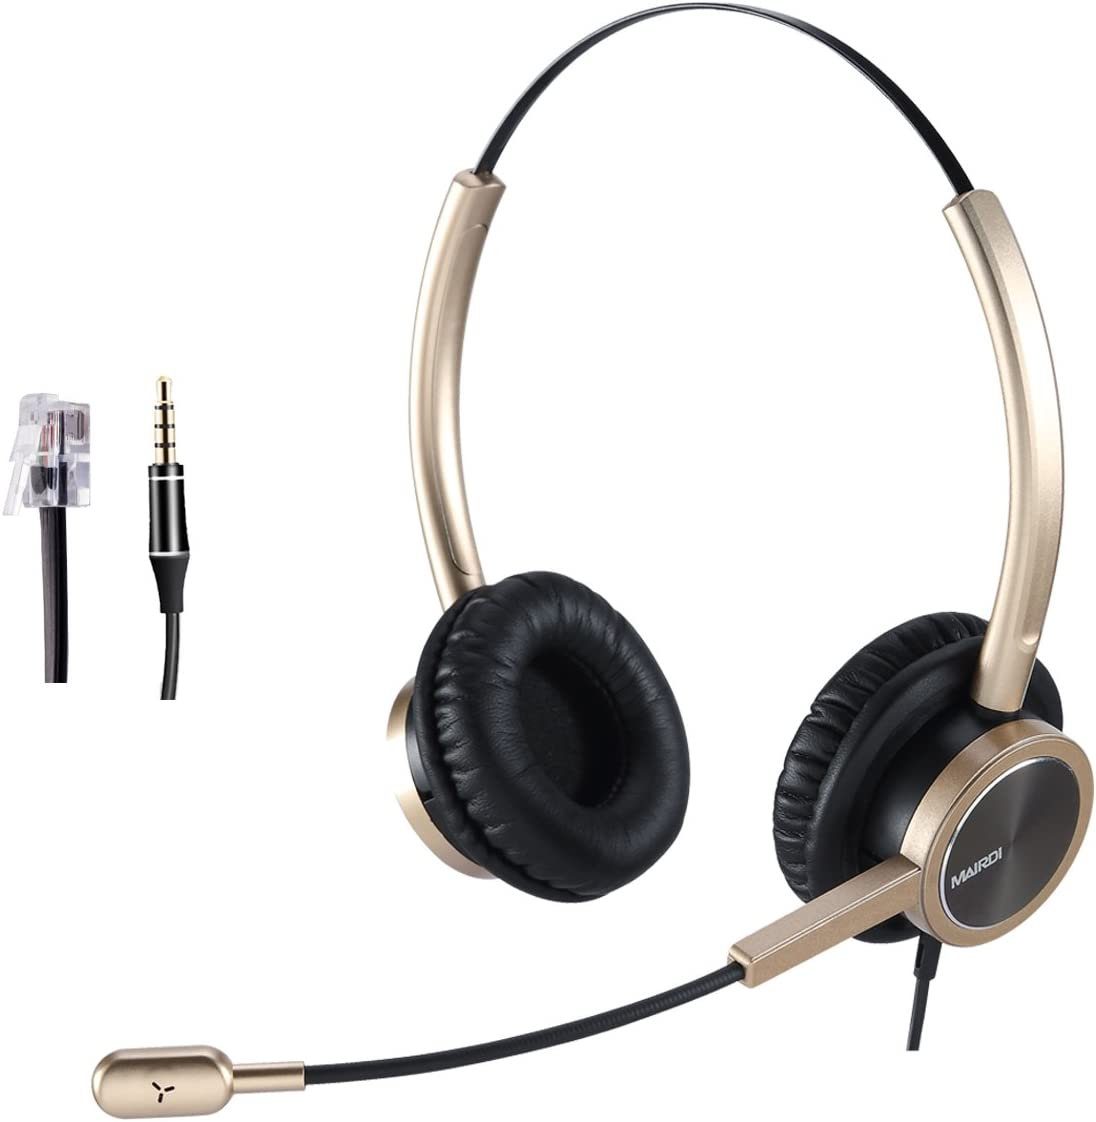 MAIRDI List price Telephone Headset with Limited Special Price Offic Noise Cancelling Microphone